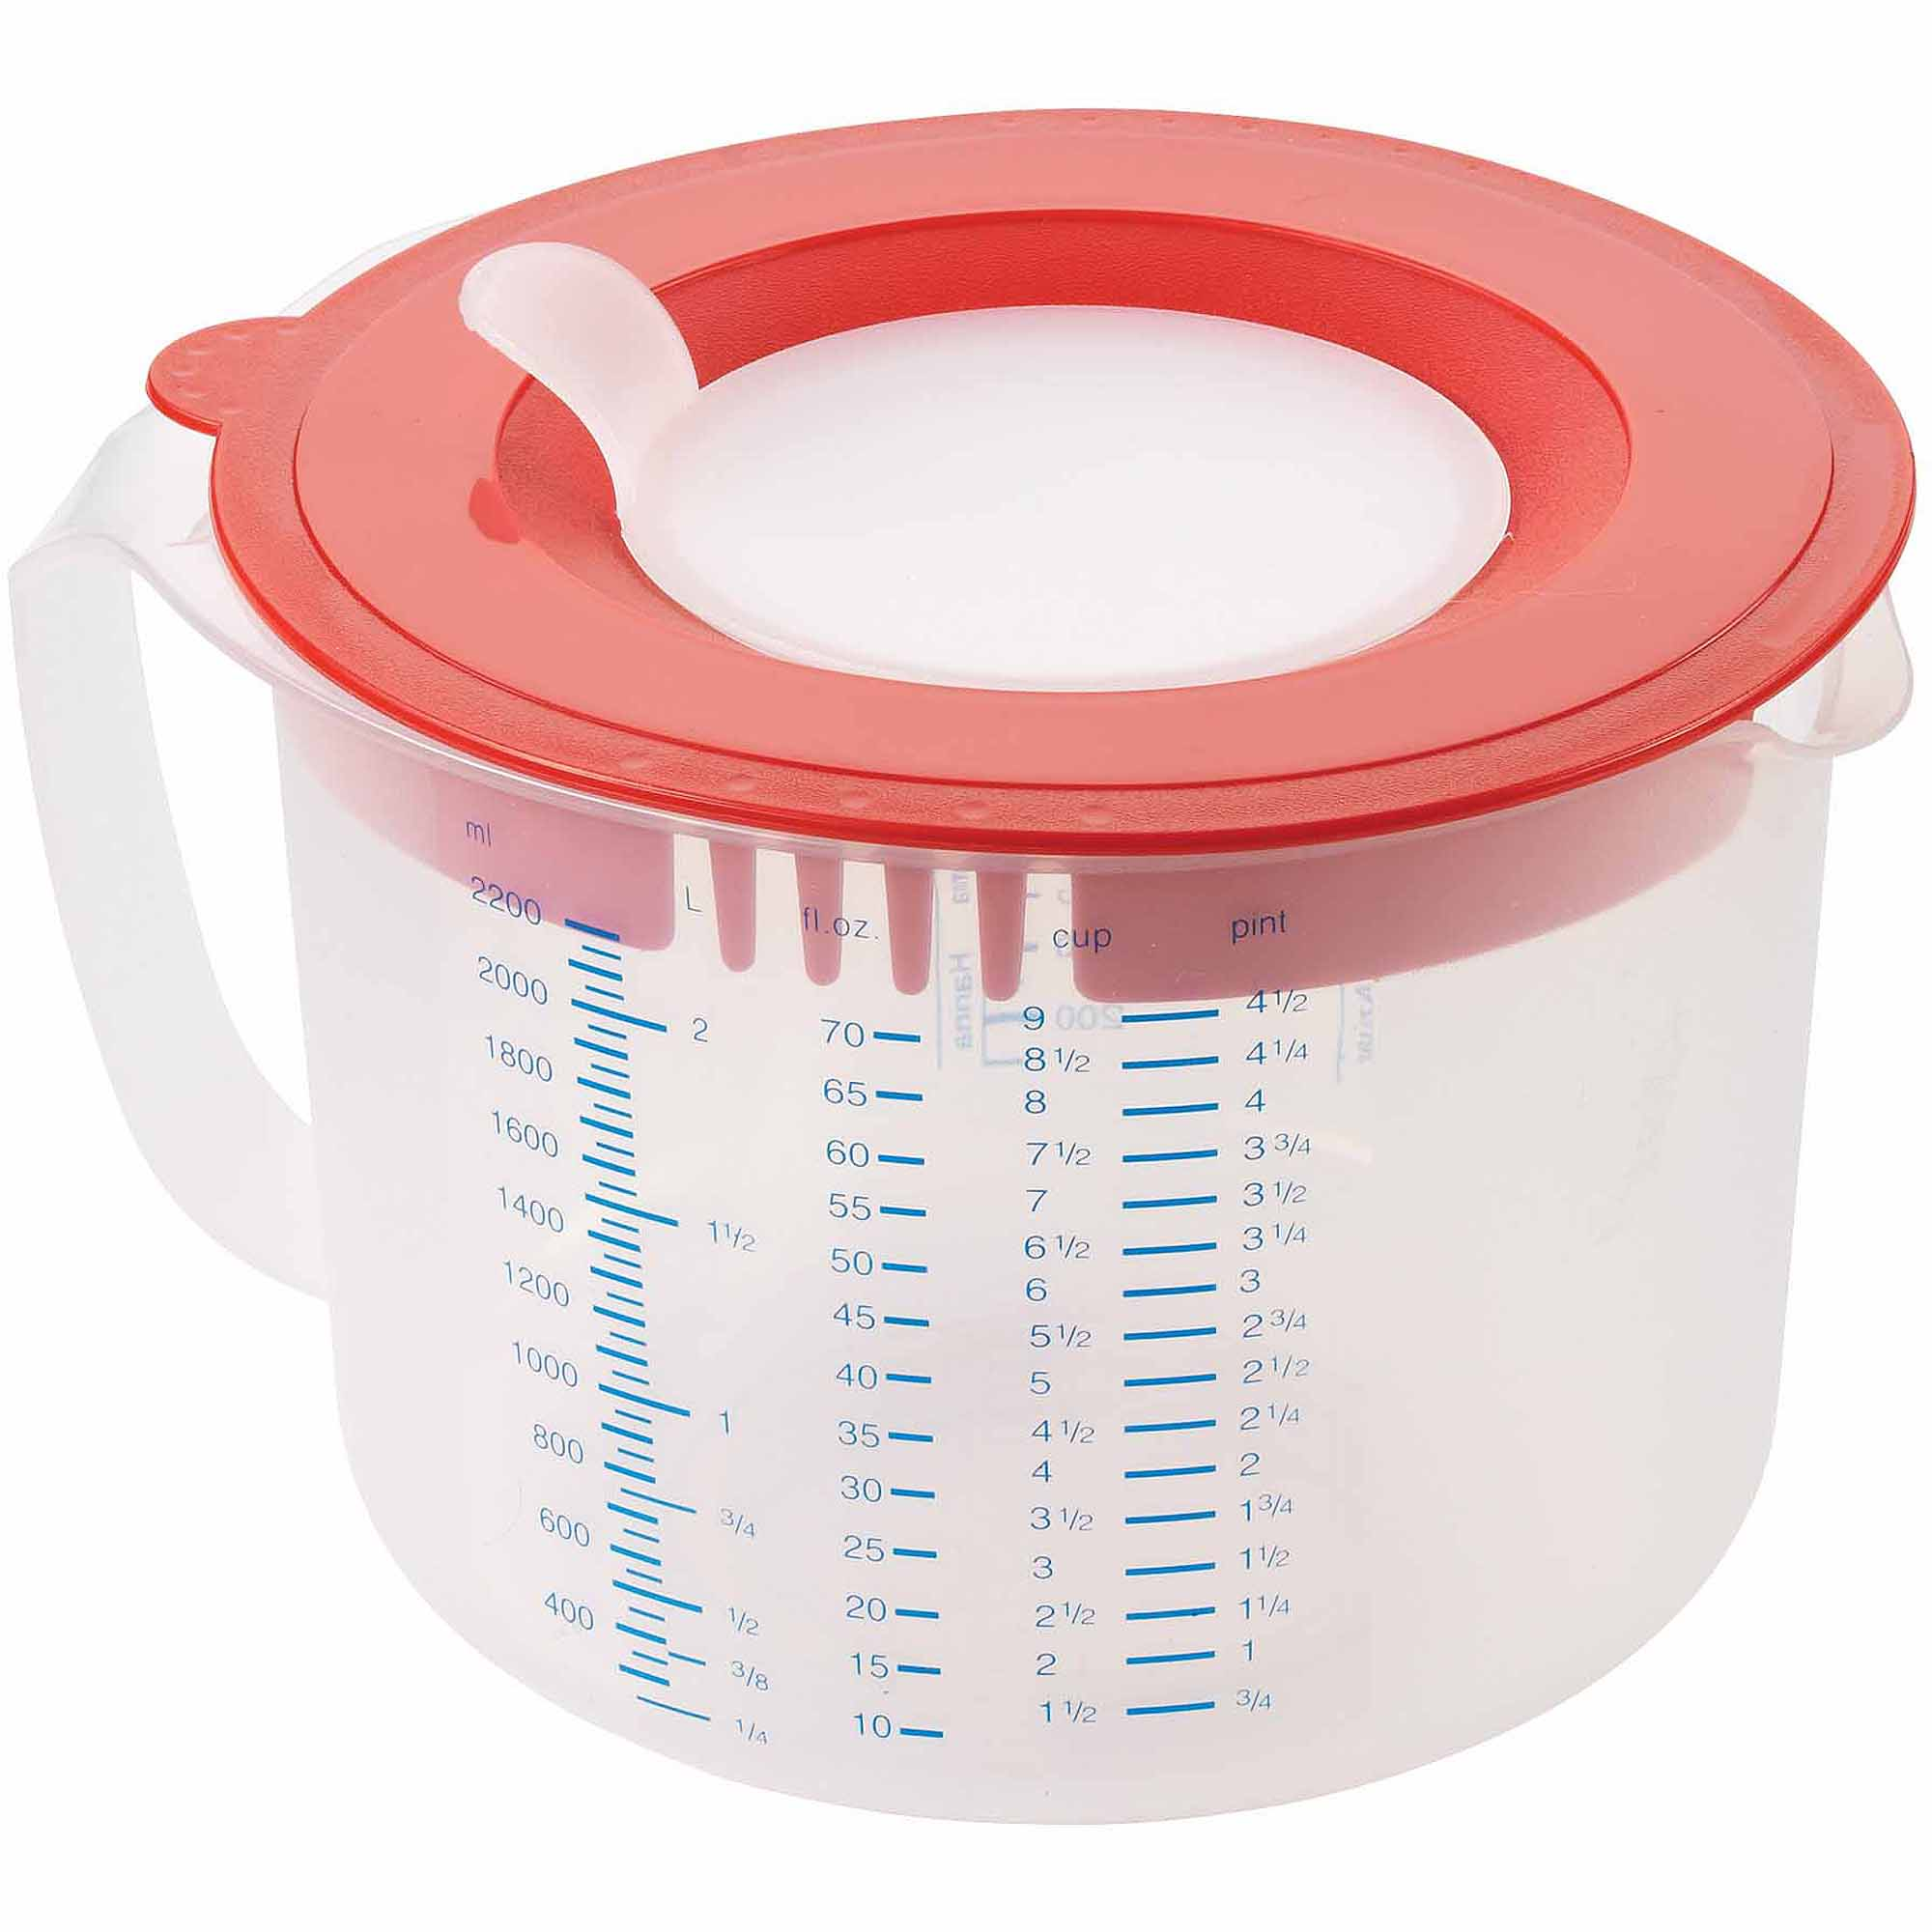 Leifheit 9-Cup 3-in-1 Measuring Cup, Transparent White and Red by LEIFHEIT